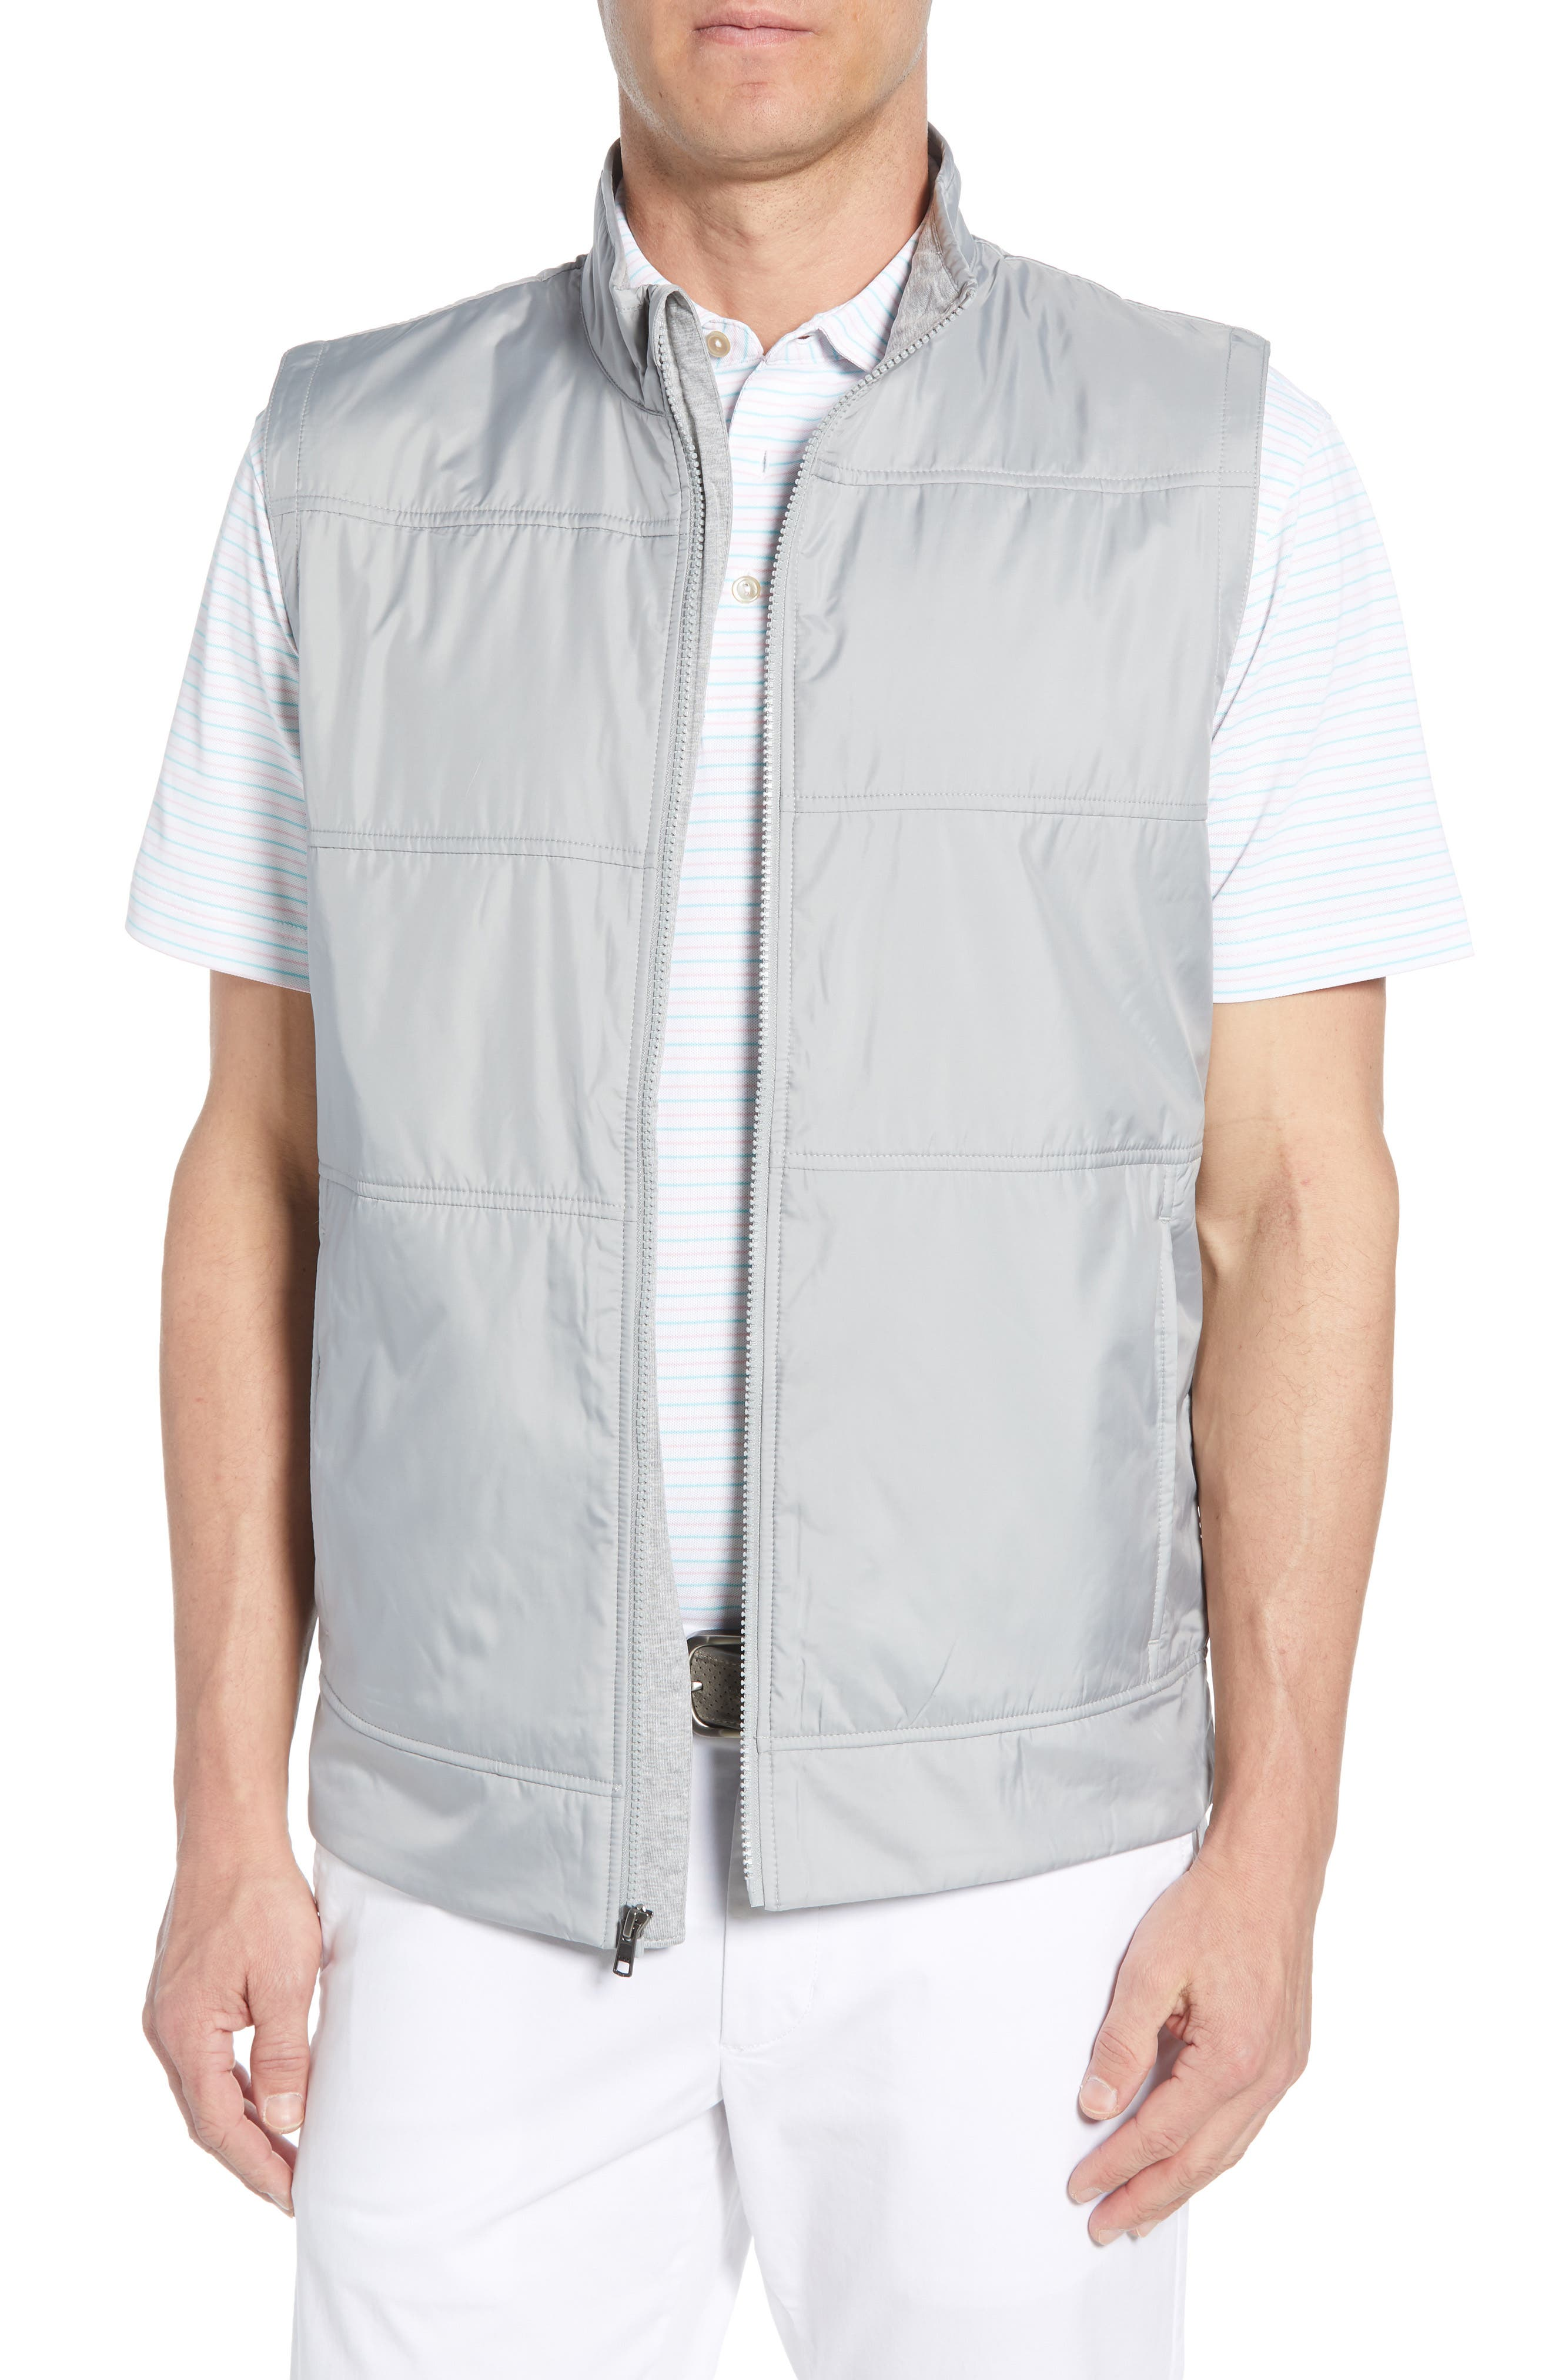 Big & Tall Cutter & Buck Stealth Quilted Vest, Grey